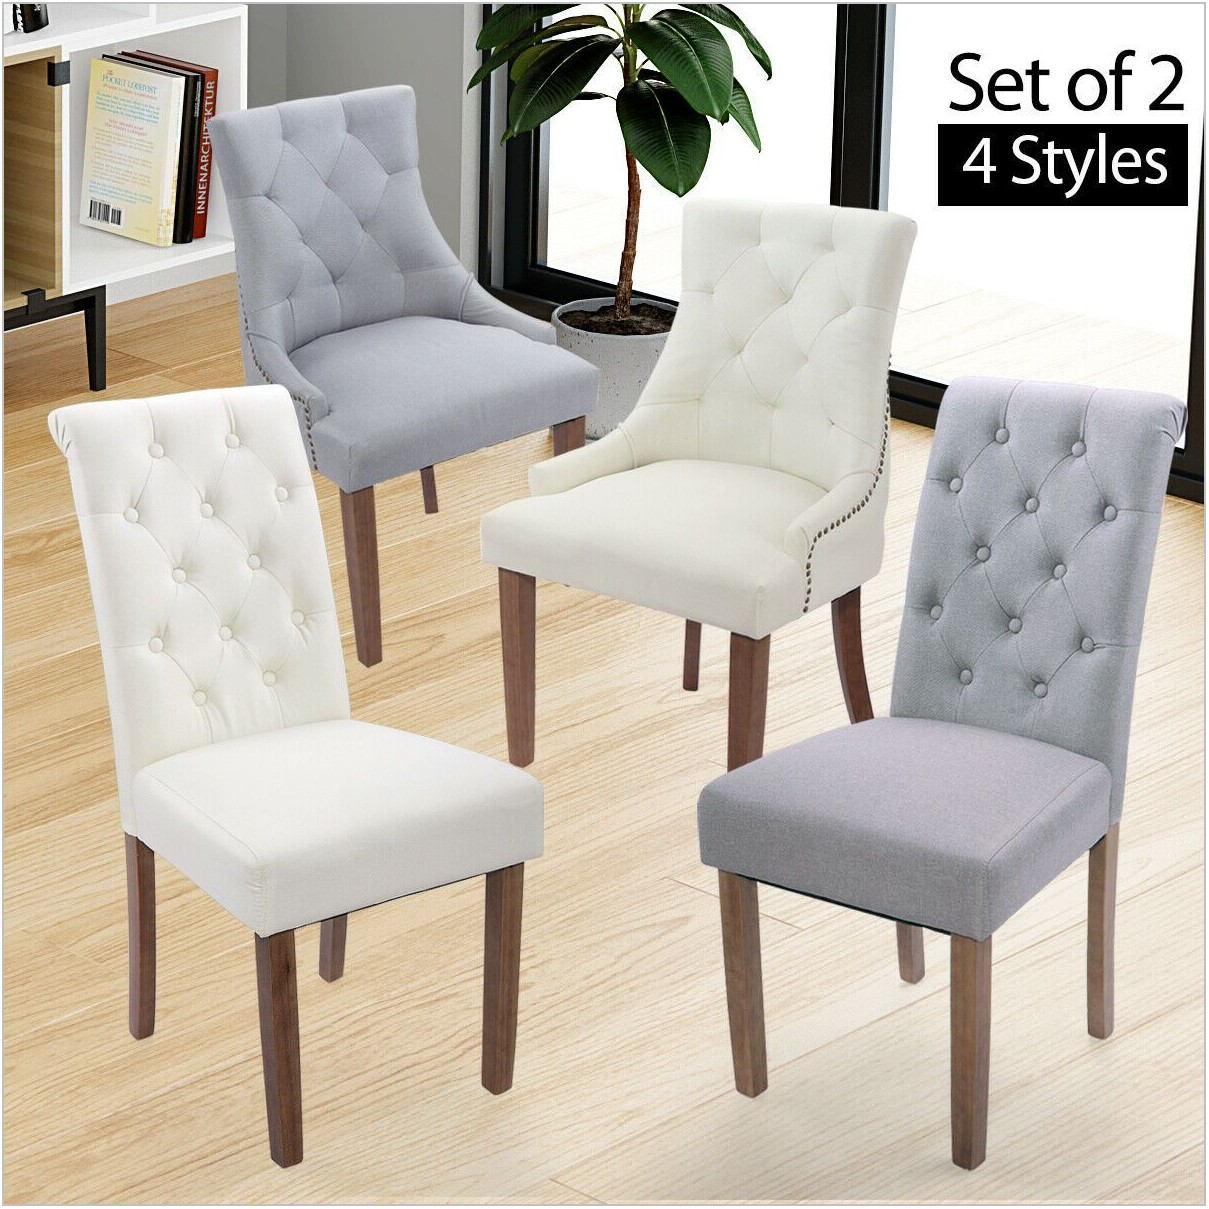 Beige Tufted Dining Room Chairs